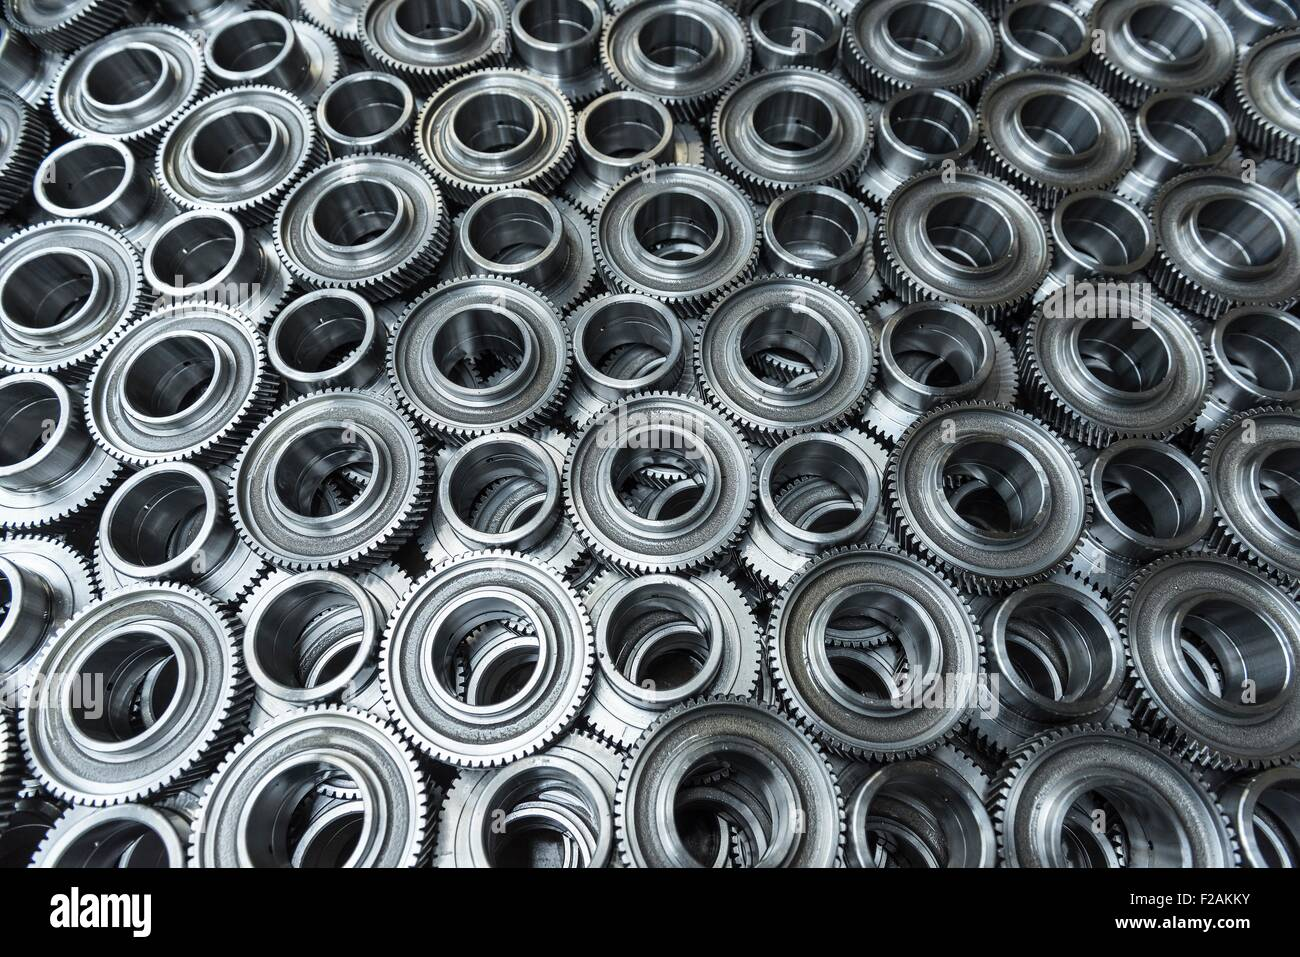 Gear wheels in production in engineering factory - Stock Image